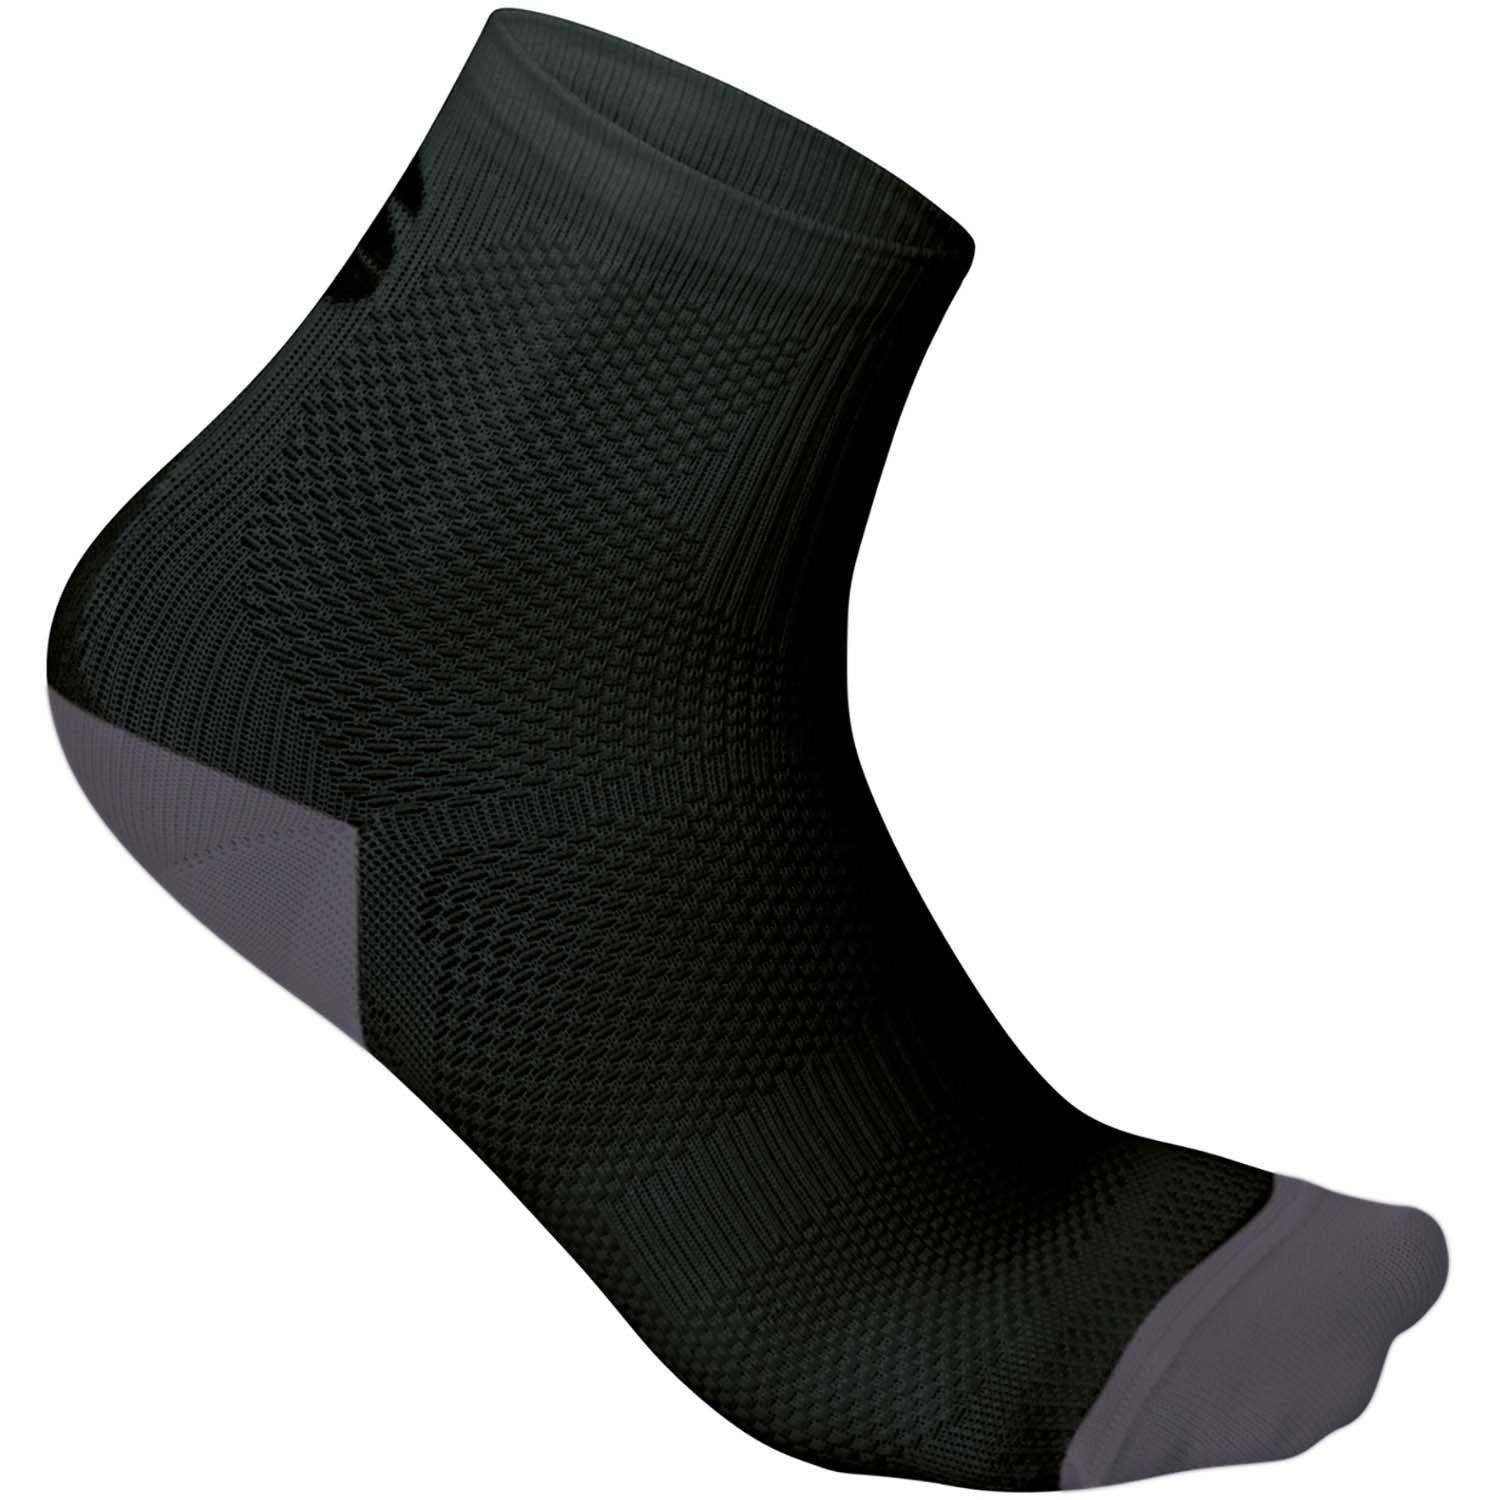 Sportful-Sportful Pro Race Women's Socks-Black-S/M-SF2006800209-saddleback-elite-performance-cycling